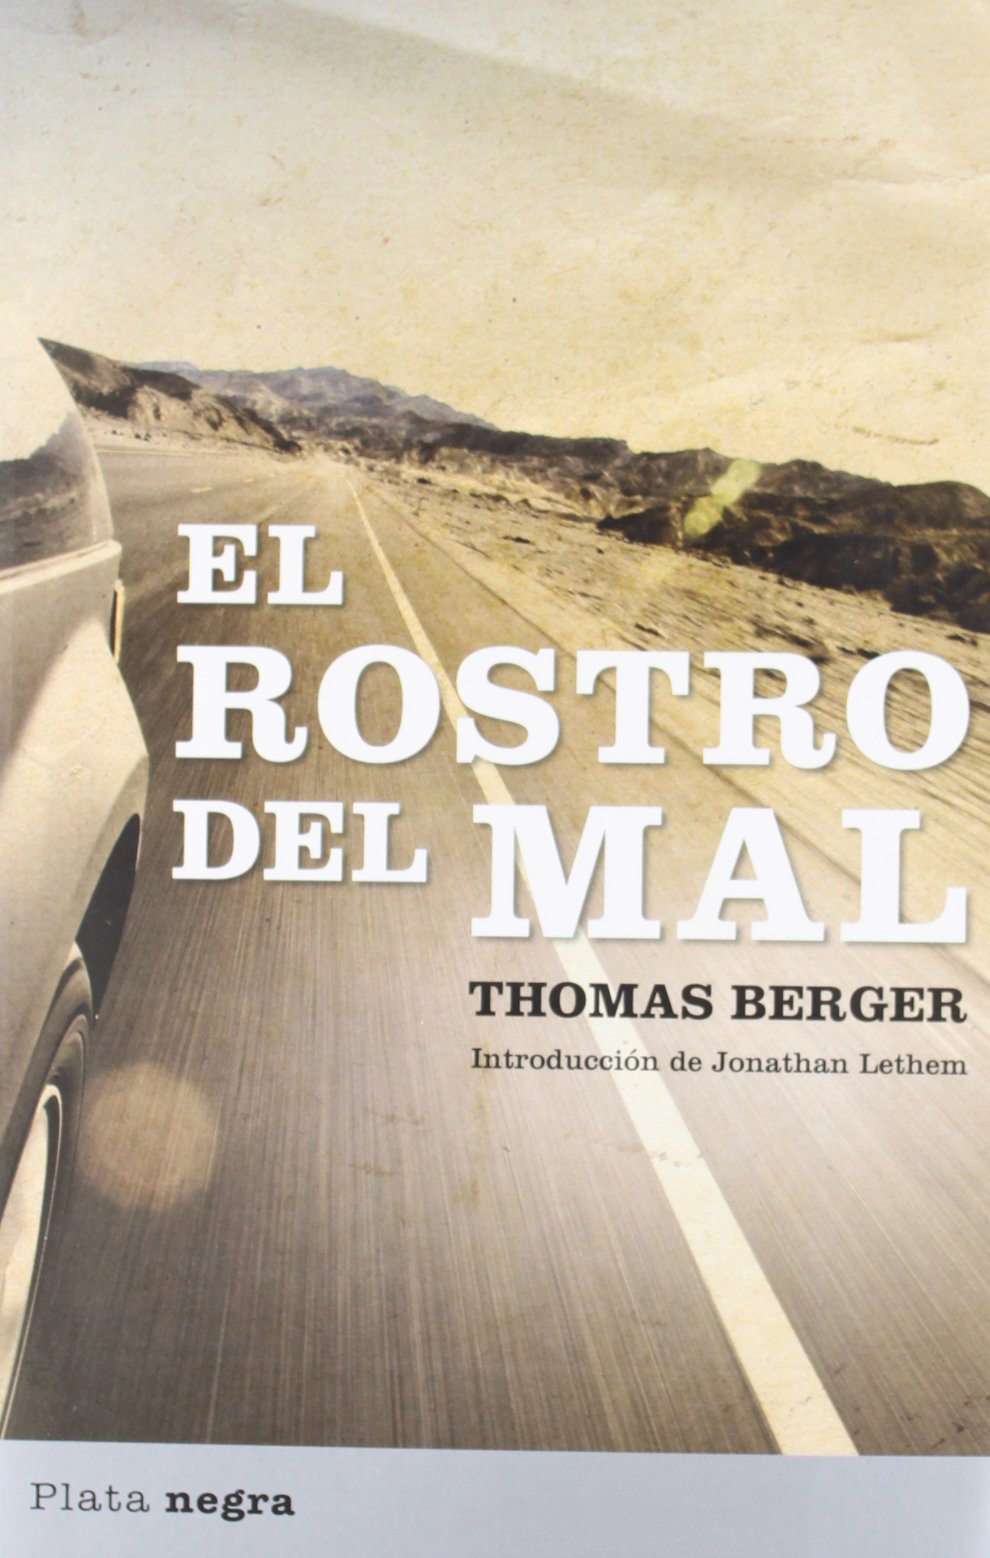 Rostro del mal, El (Plata Negra) (Spanish Edition): Thomas Berger: 9788492919130: Amazon.com: Books